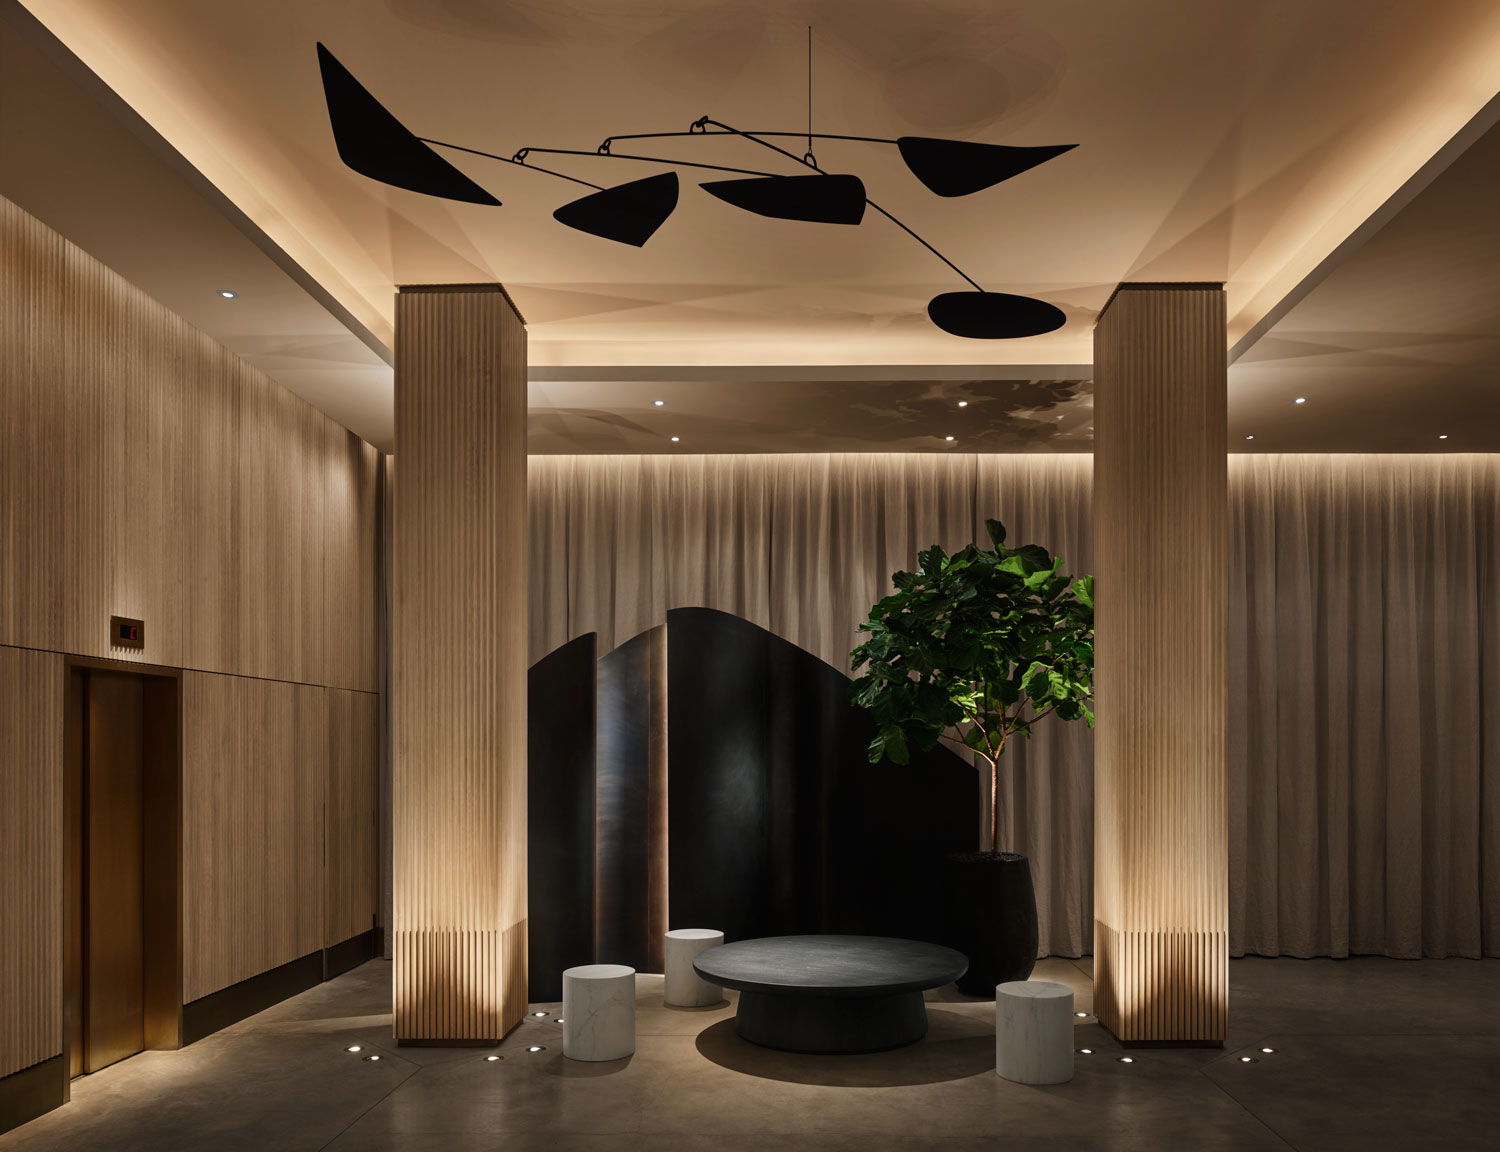 11 howard hotel opens in new york yellowtrace for Design hotel kopenhagen